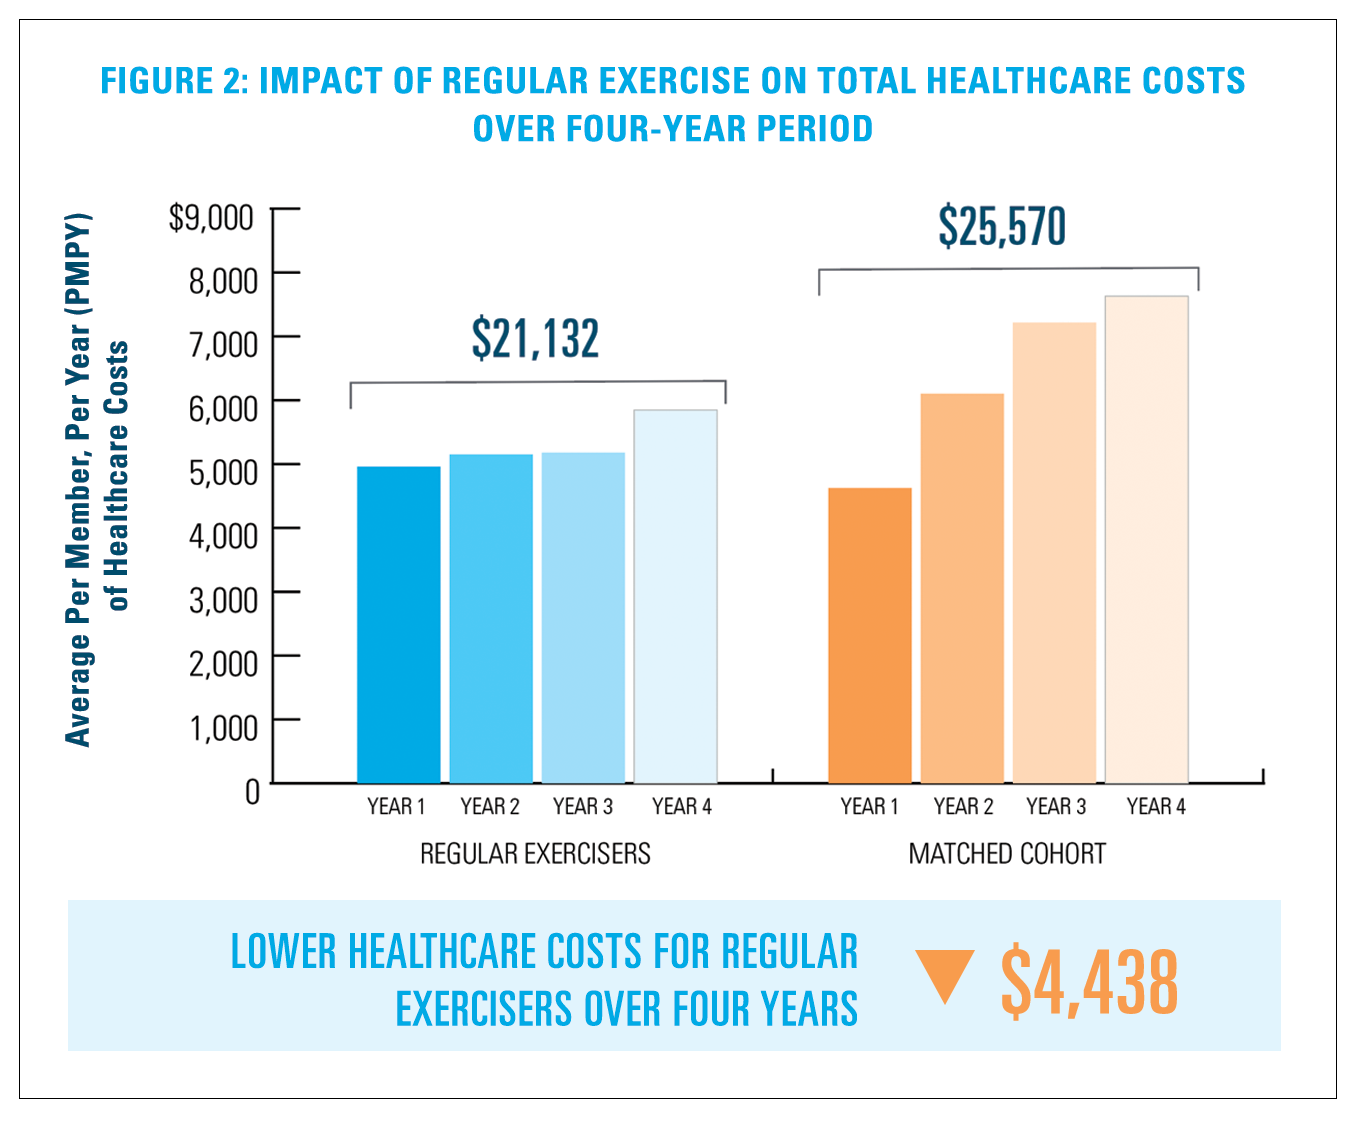 Figure 2: Impact of Regular Exercise on Total Healthcare Costs over Four Year Period